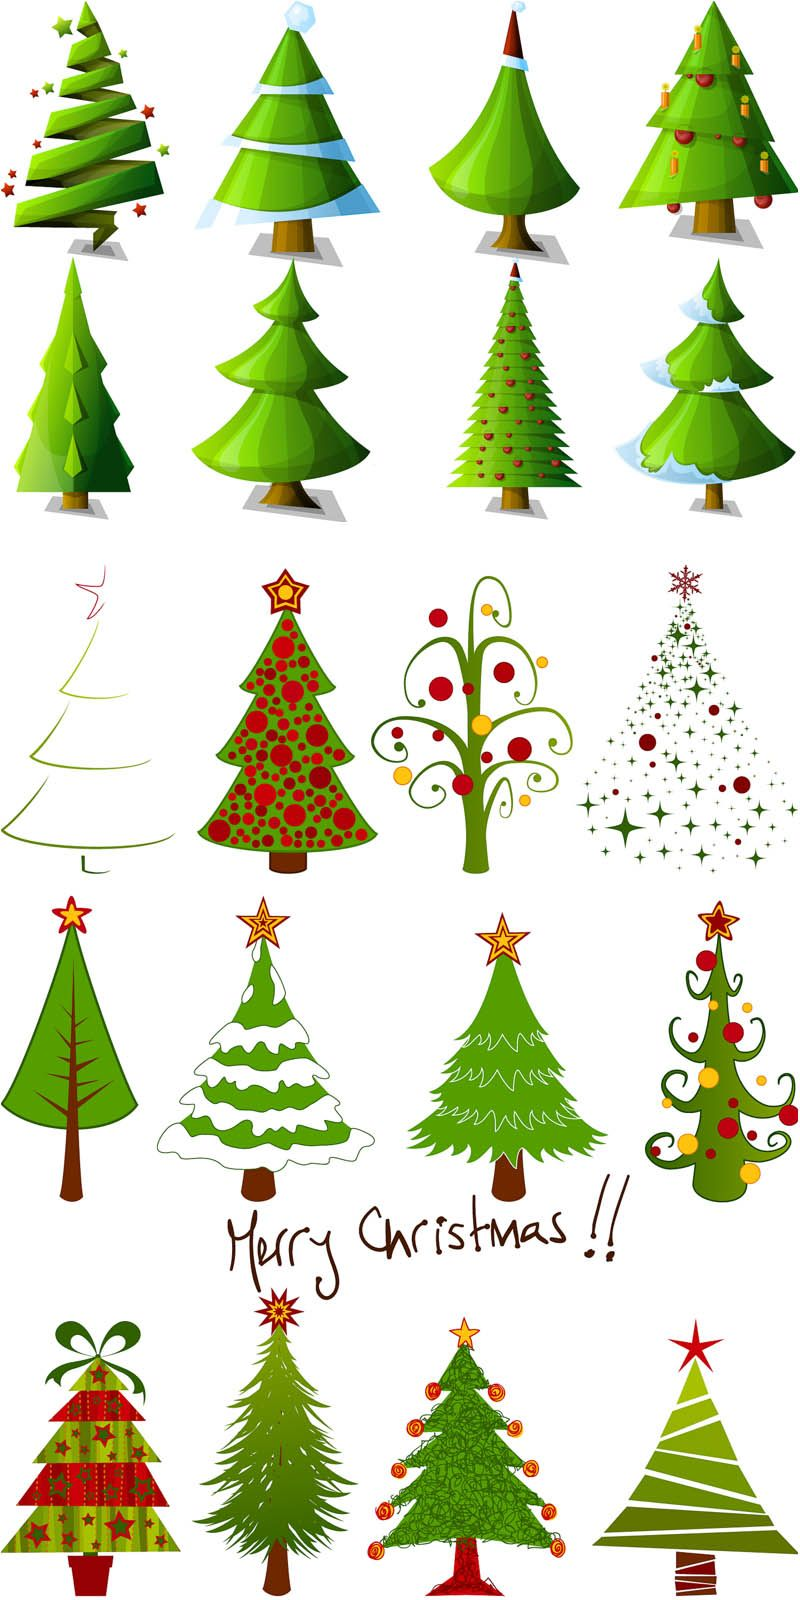 2 sets of 20 vector cartoon christmas tree designs in different